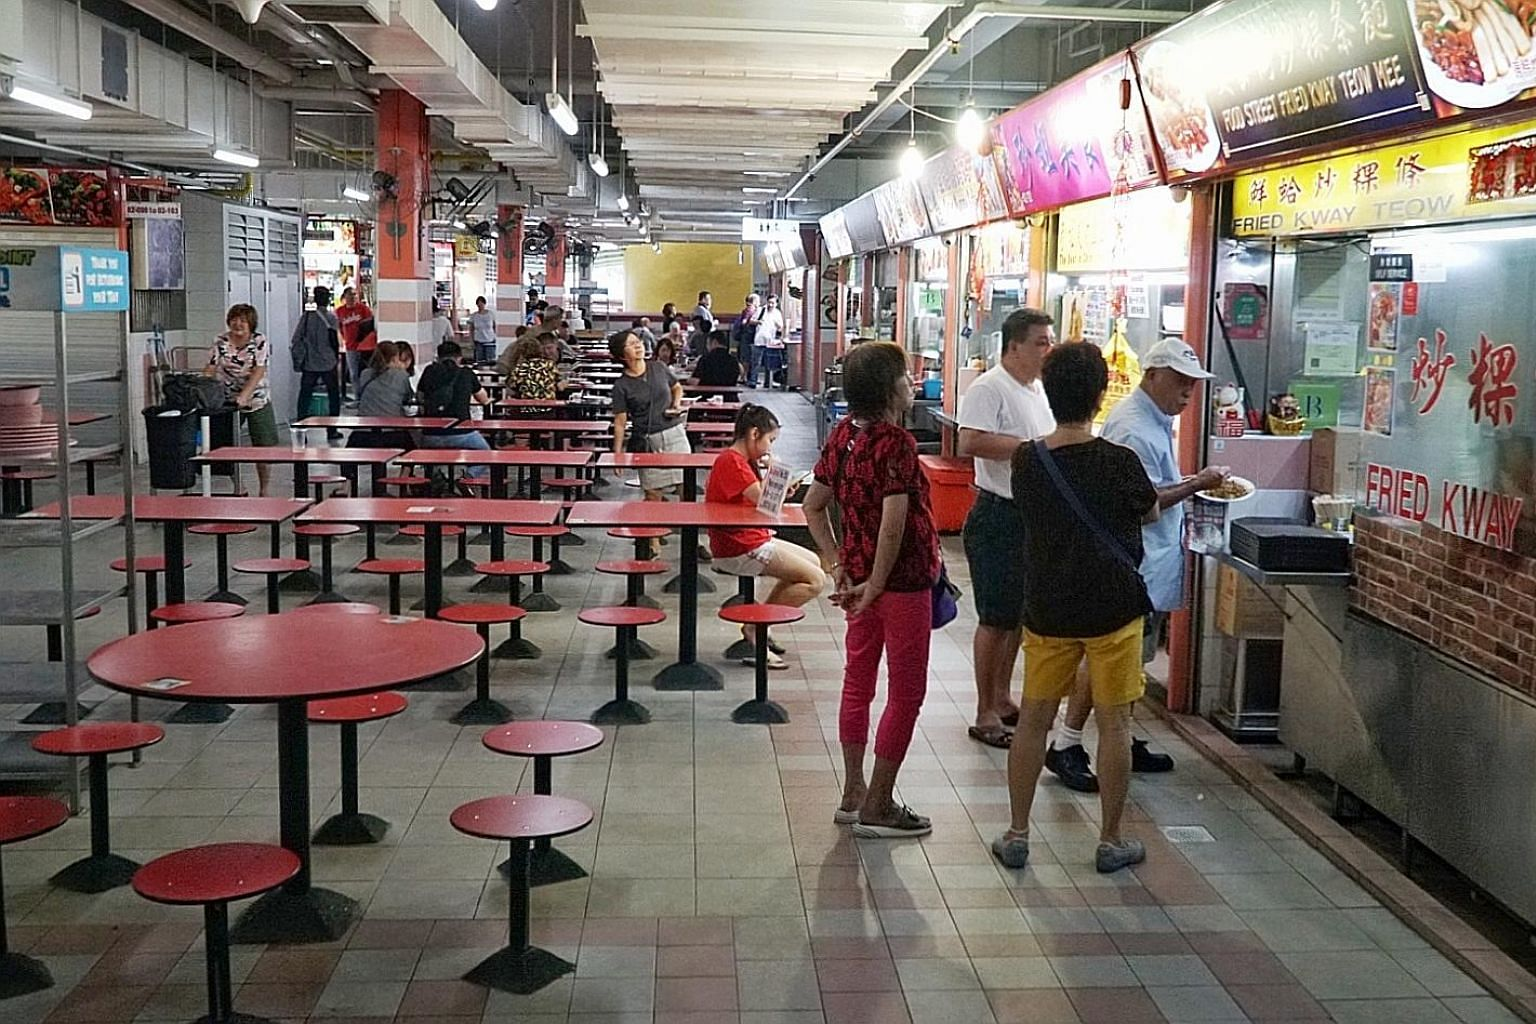 The Smith Street hawker centre (above) in Chinatown is yet another ghost town, with many stalls having been shut for weeks amid the coronavirus outbreak that originated in Wuhan city in China's Hubei province.